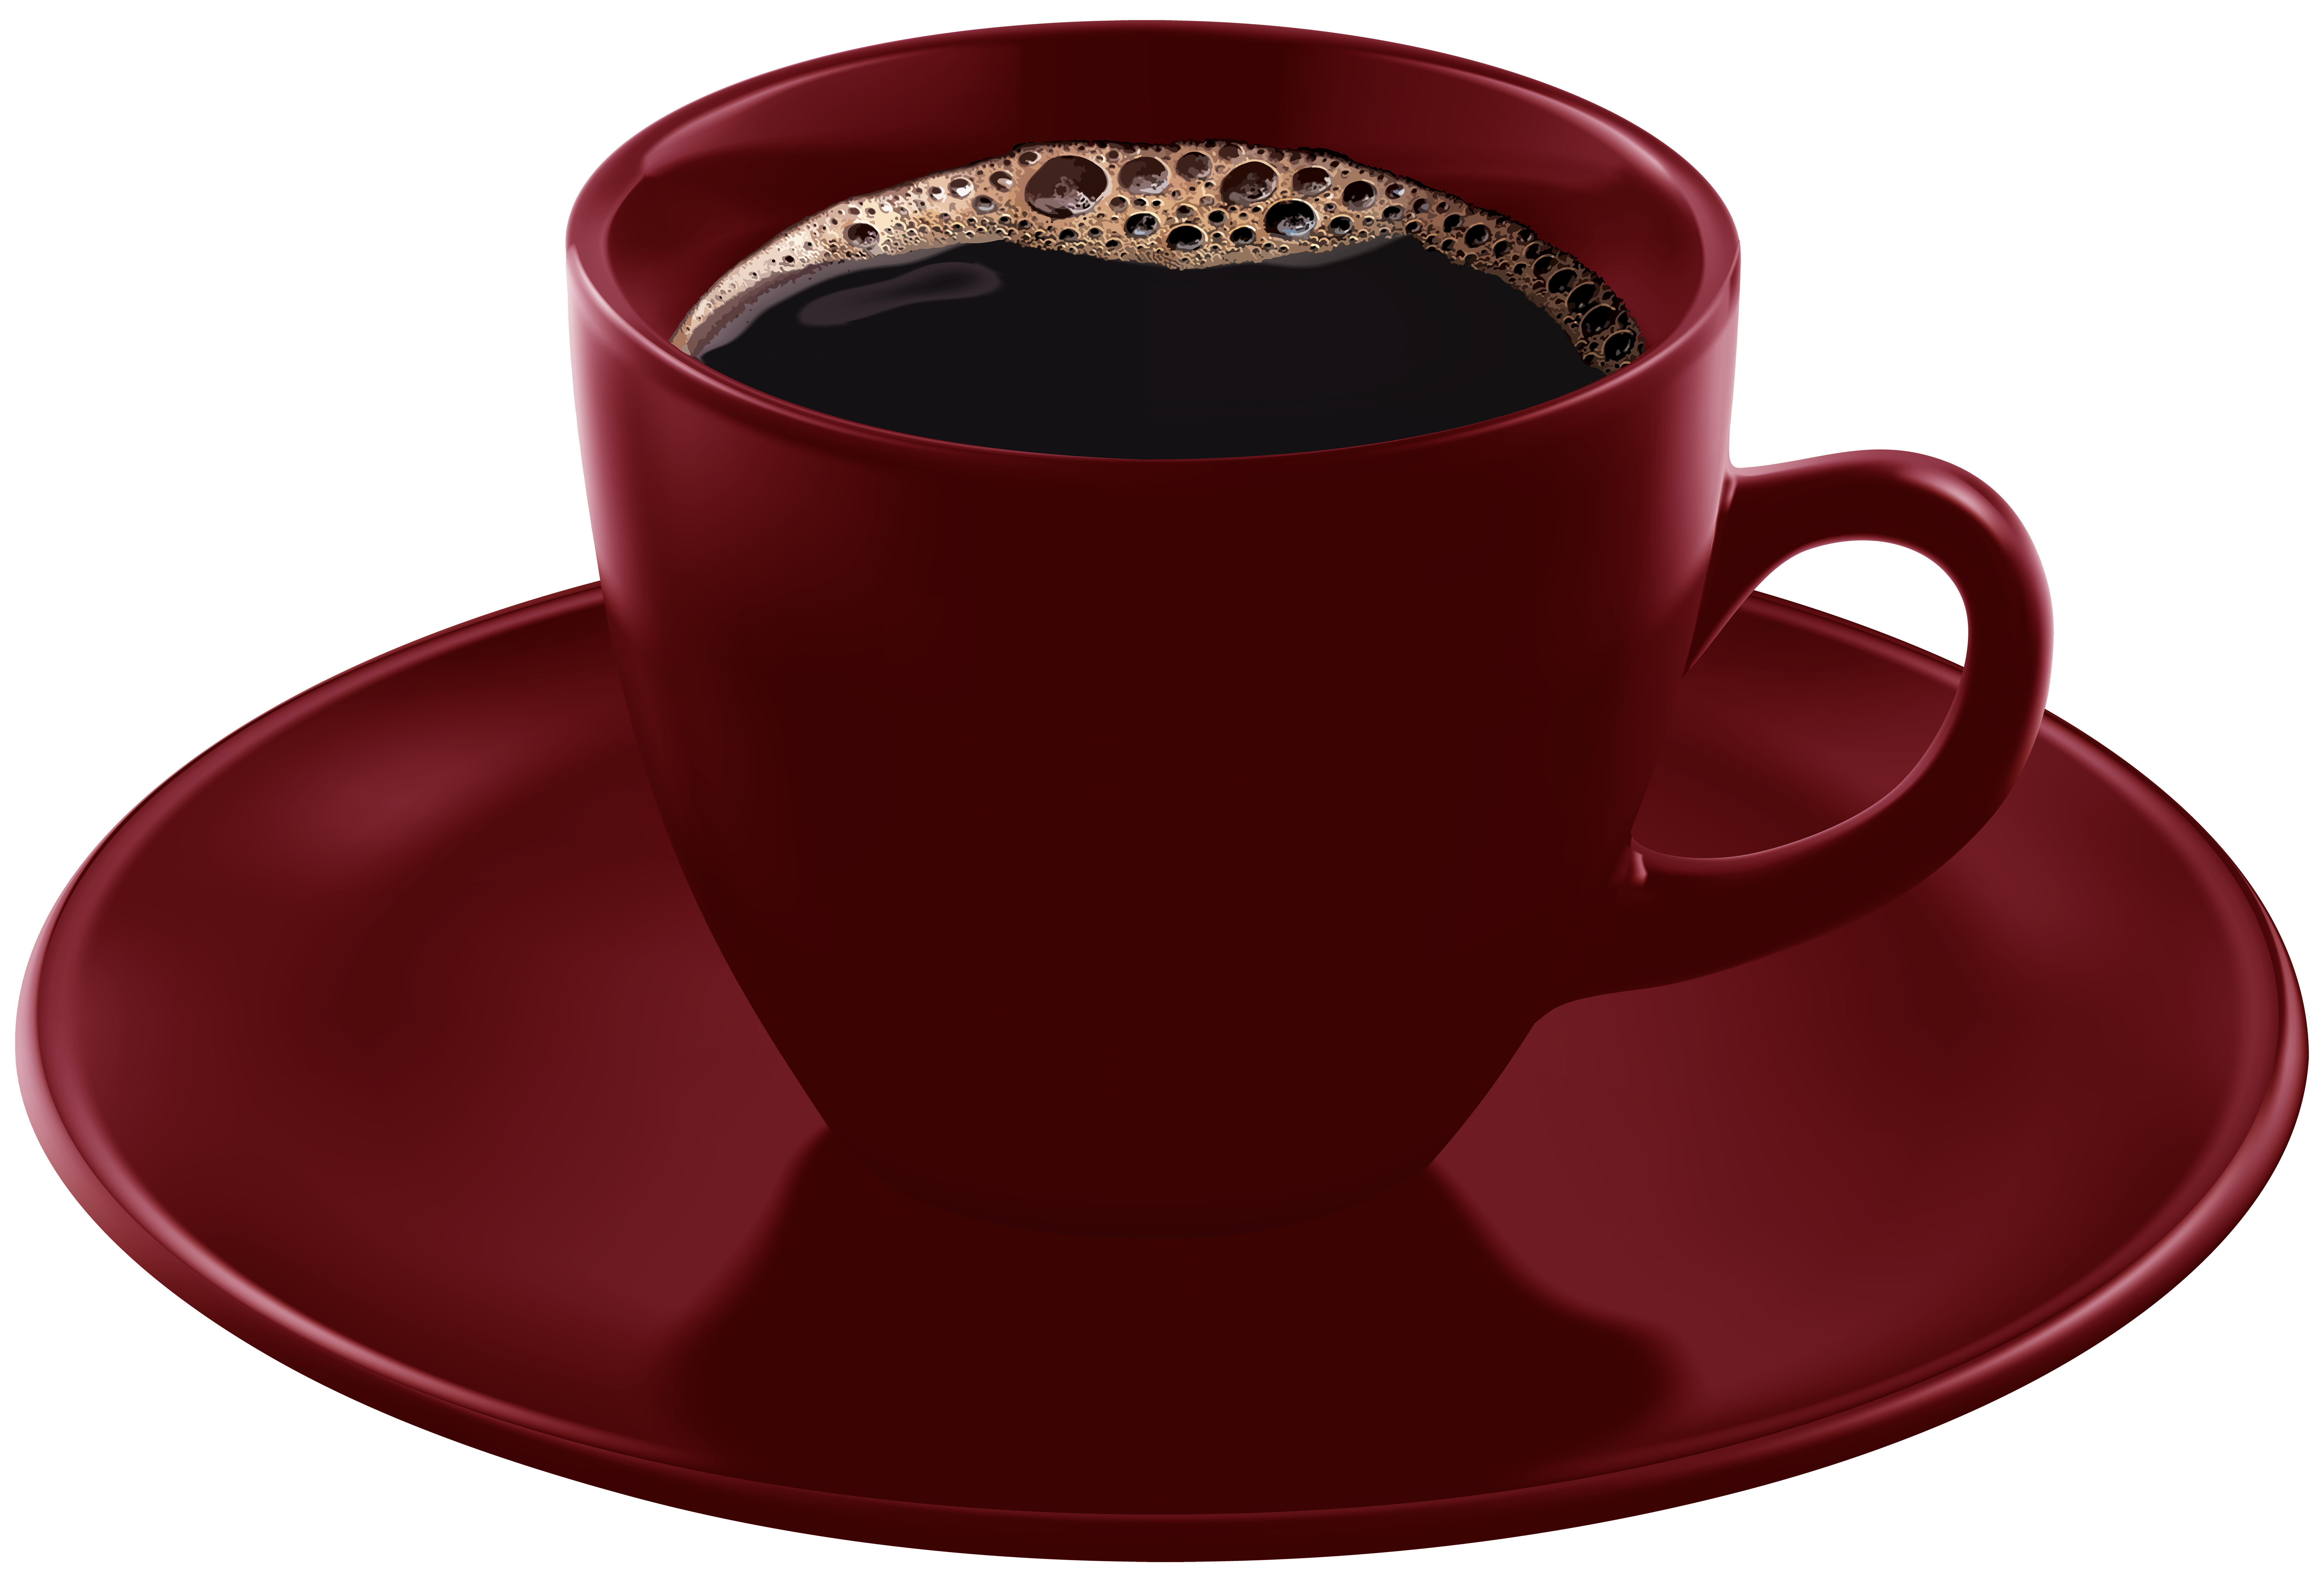 Cup png clip art. Clipart coffee summer